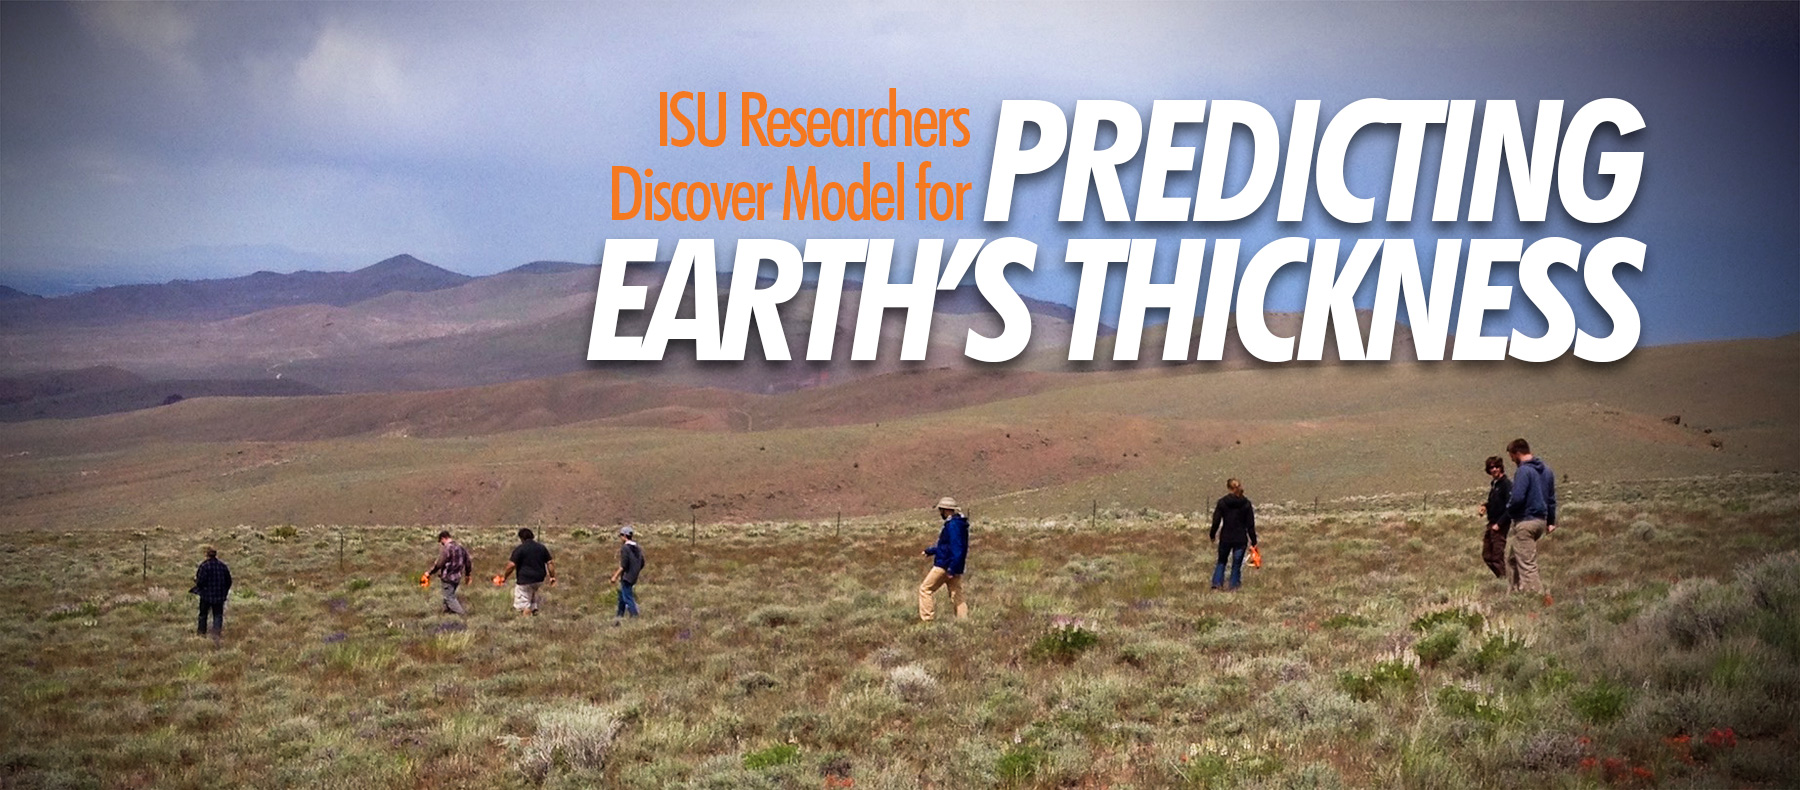 ISU researchers discover model for predicting earth's thickness